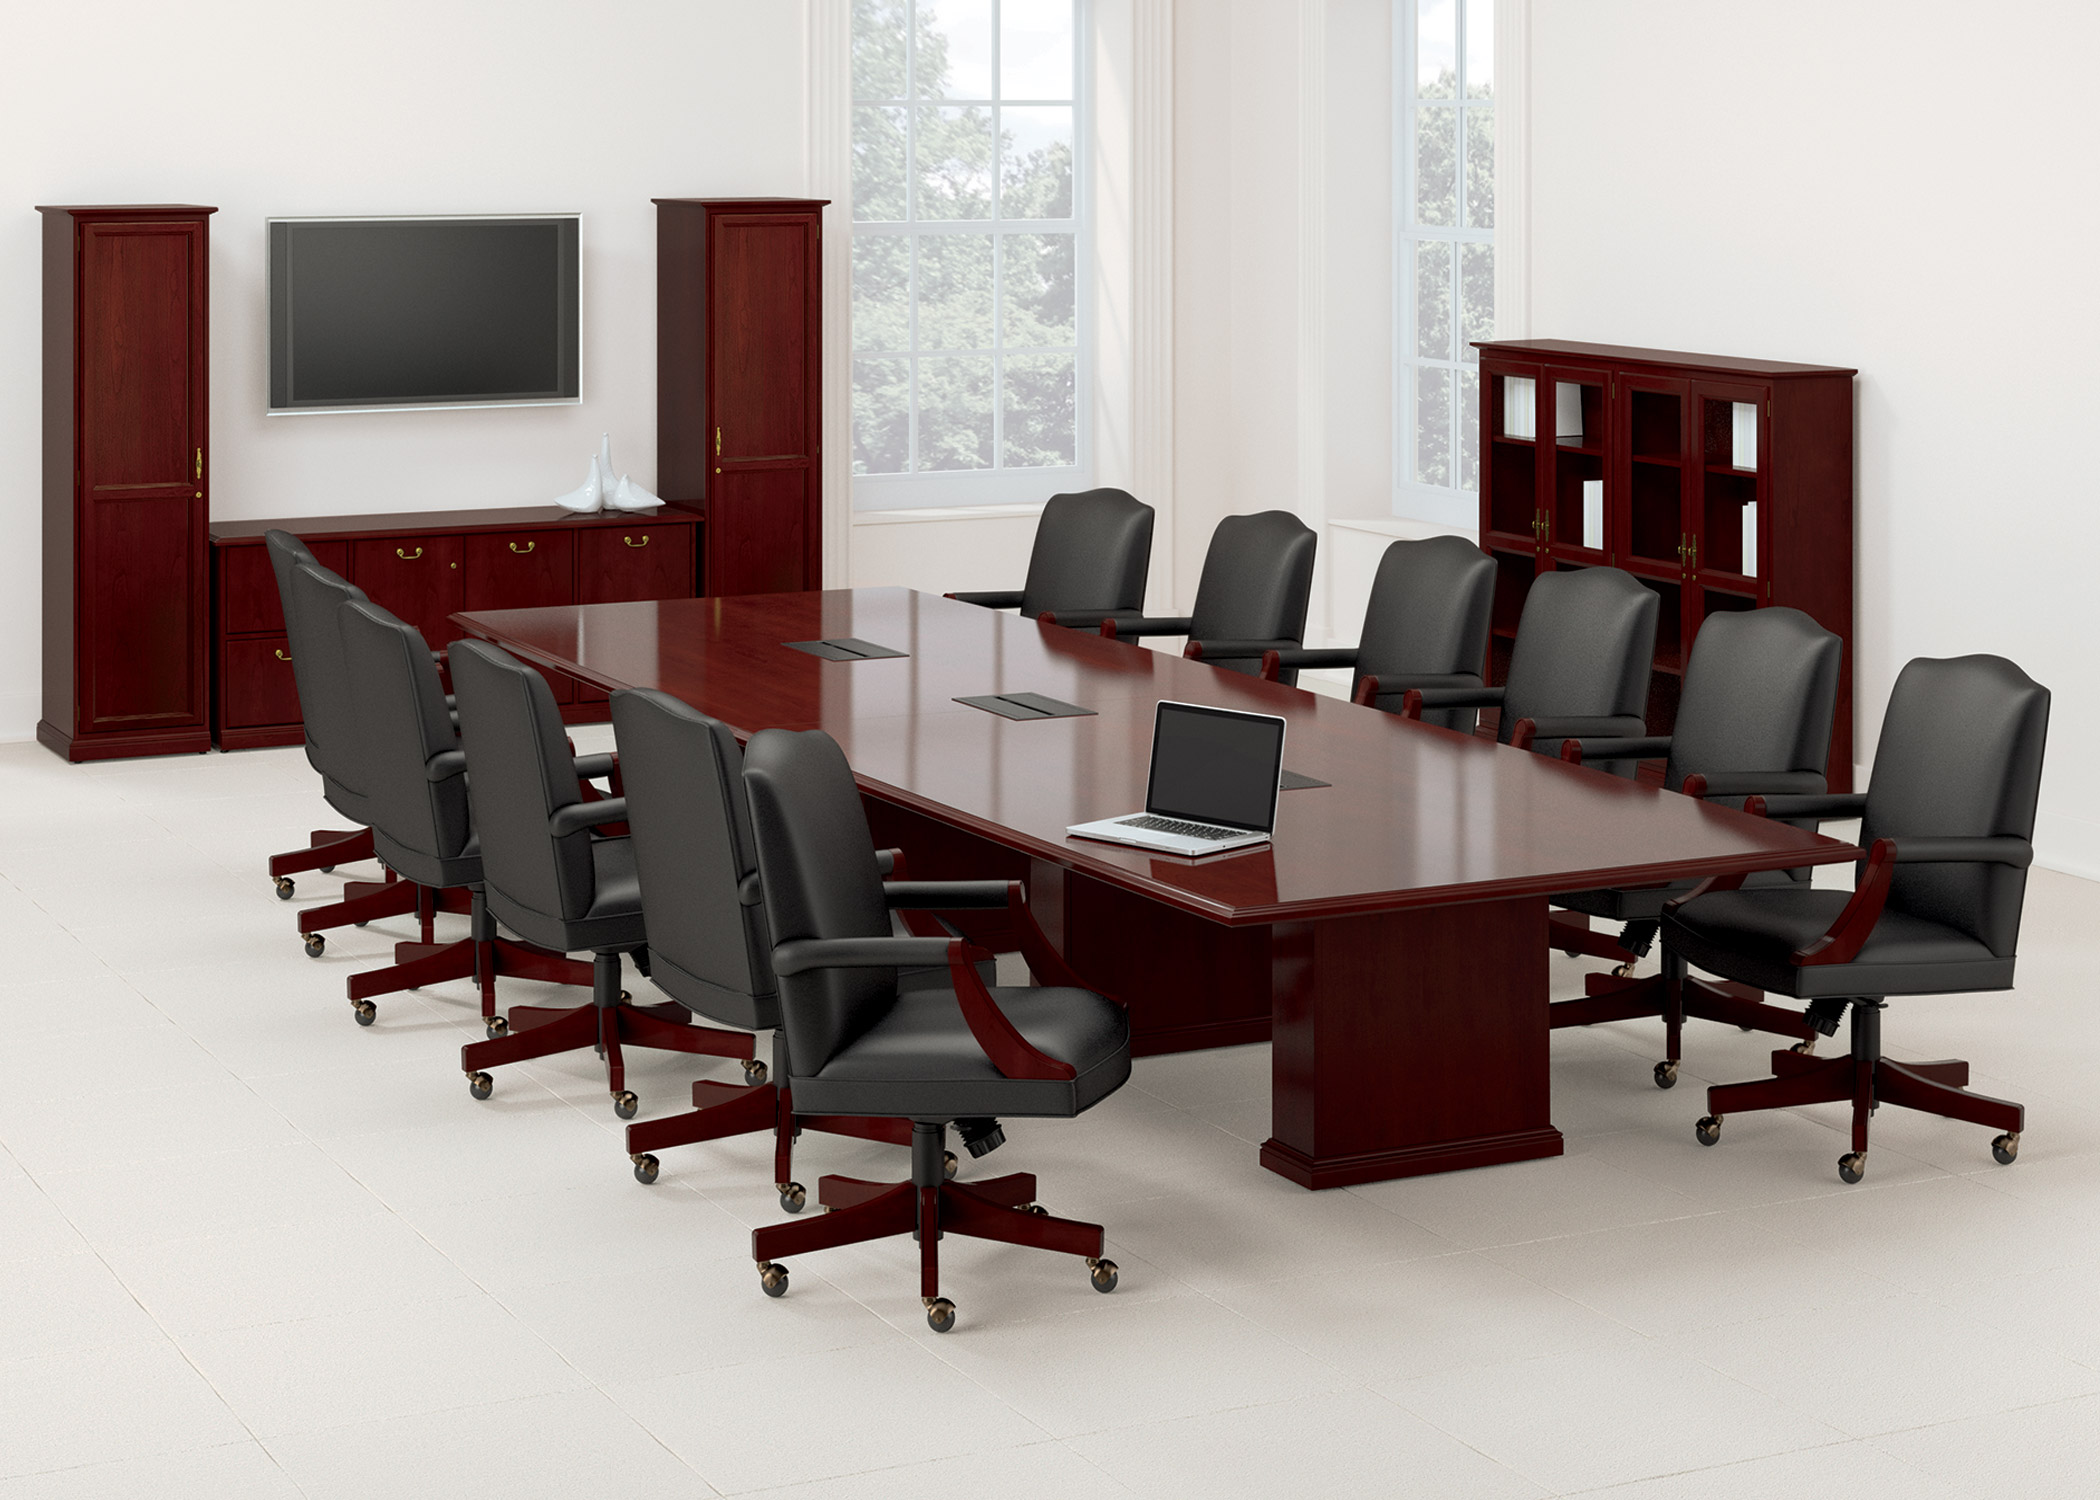 Conference table furniture chairs seating for Furniture nation